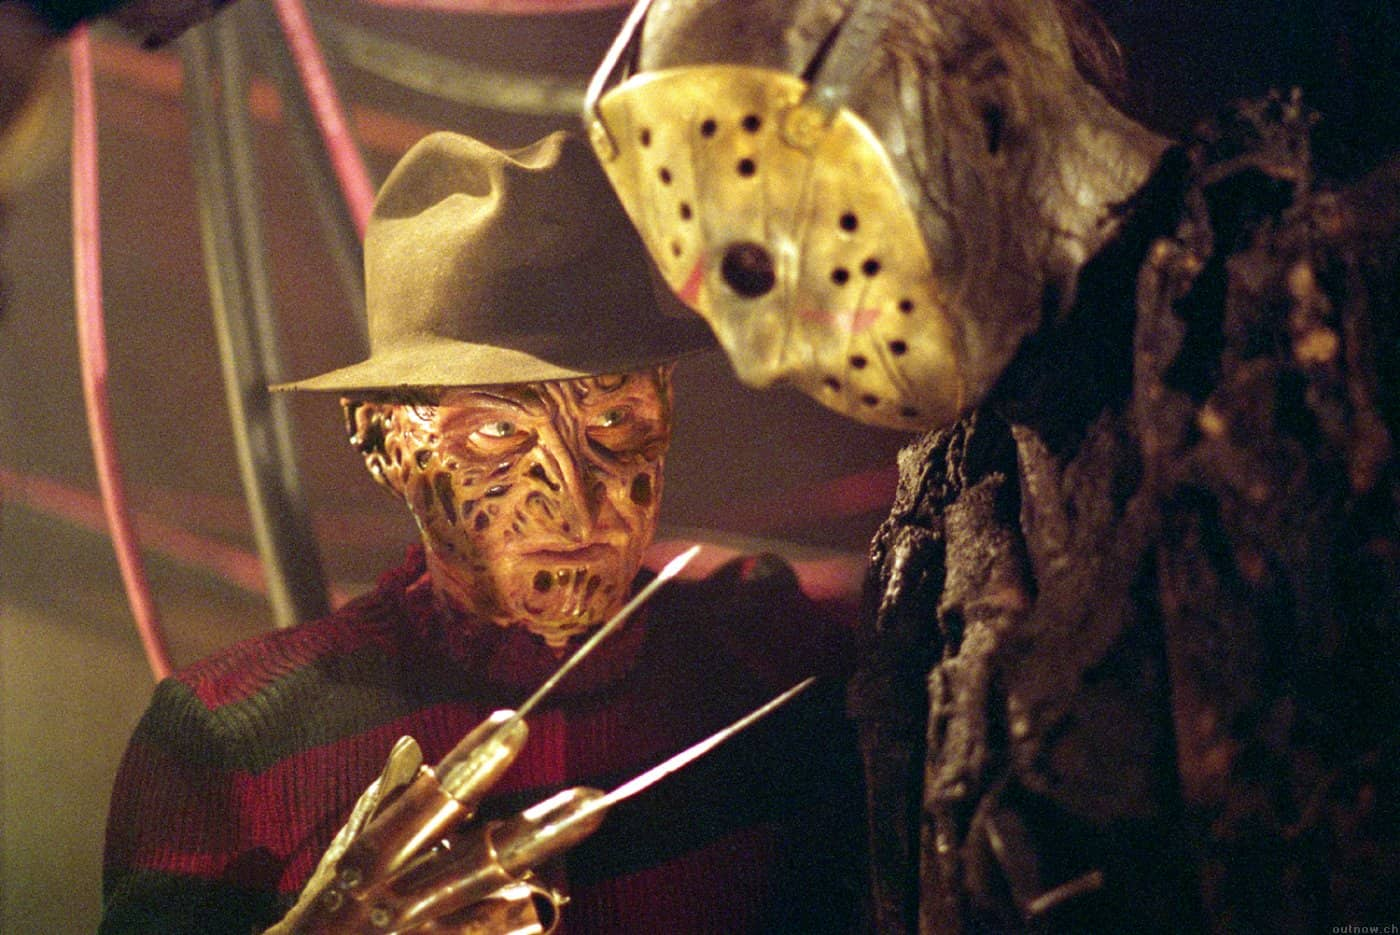 A Slasher Film Celebration Part 1 of 2: Ranking 120 Slasher Films into Tiers (for Fears)